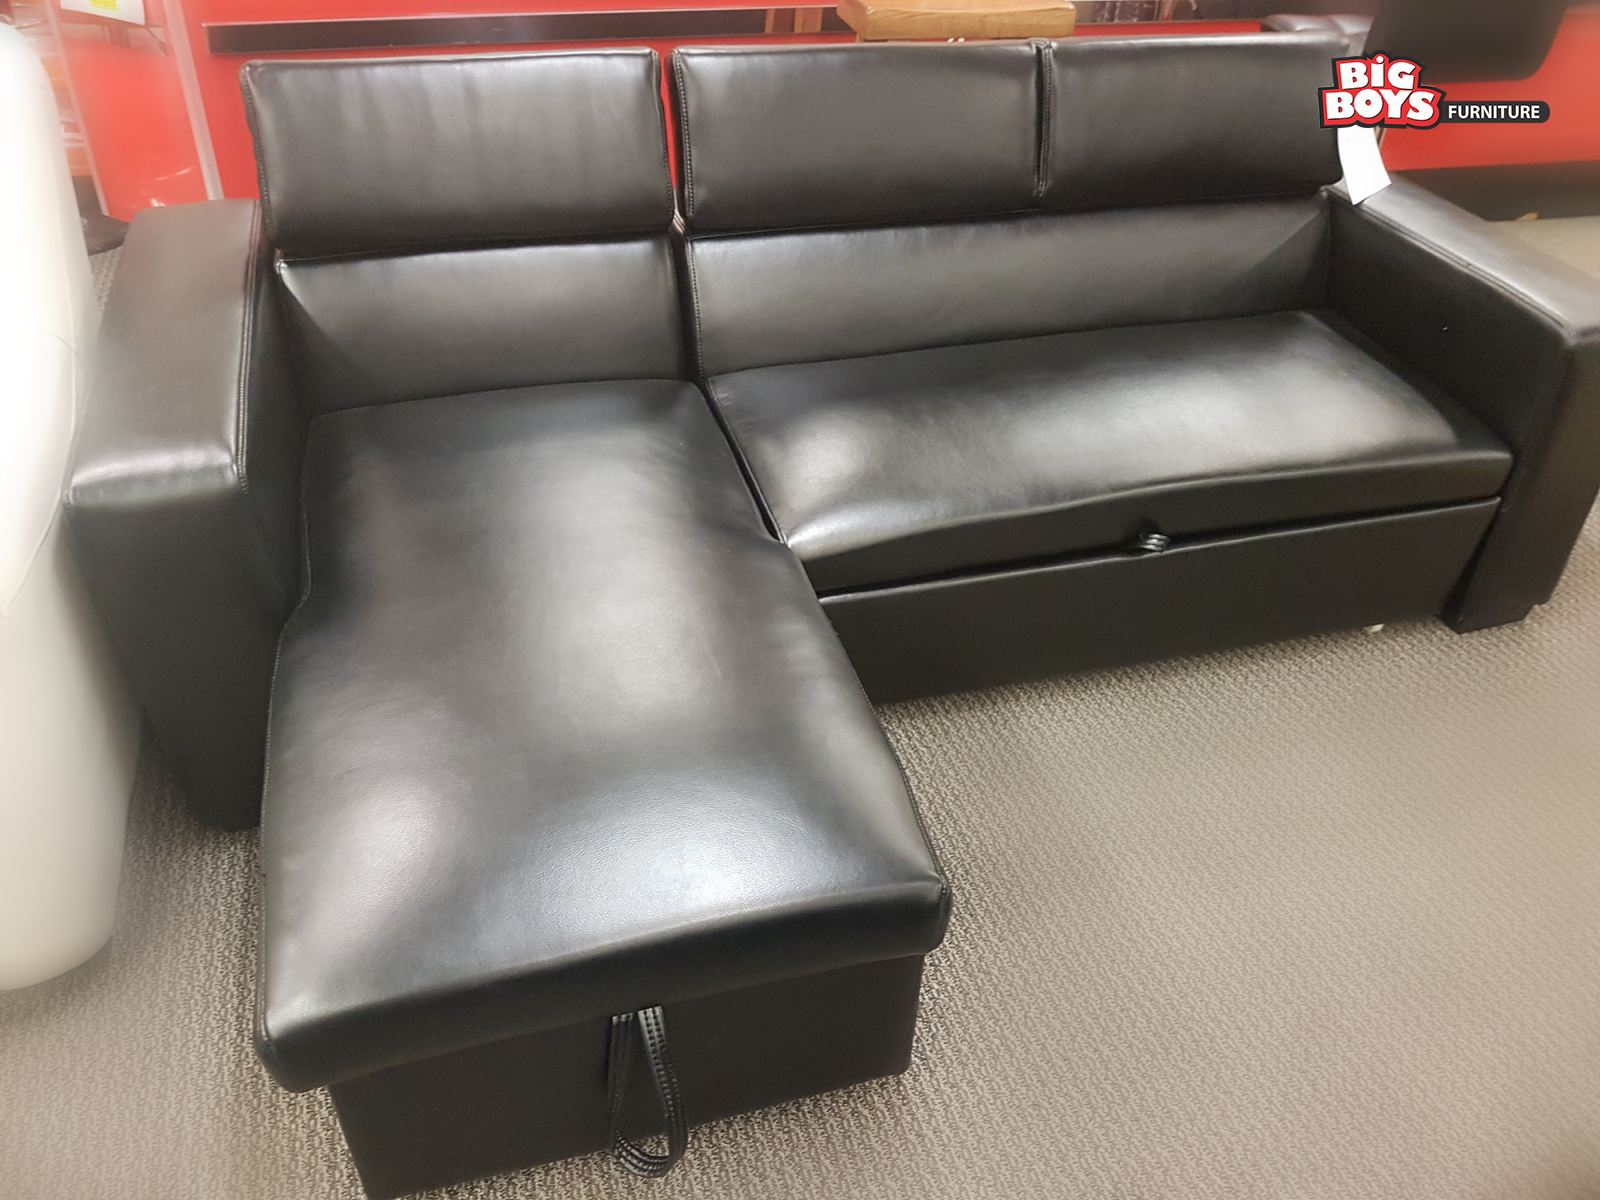 Best designs in Sectionals at Big Boys Furniture